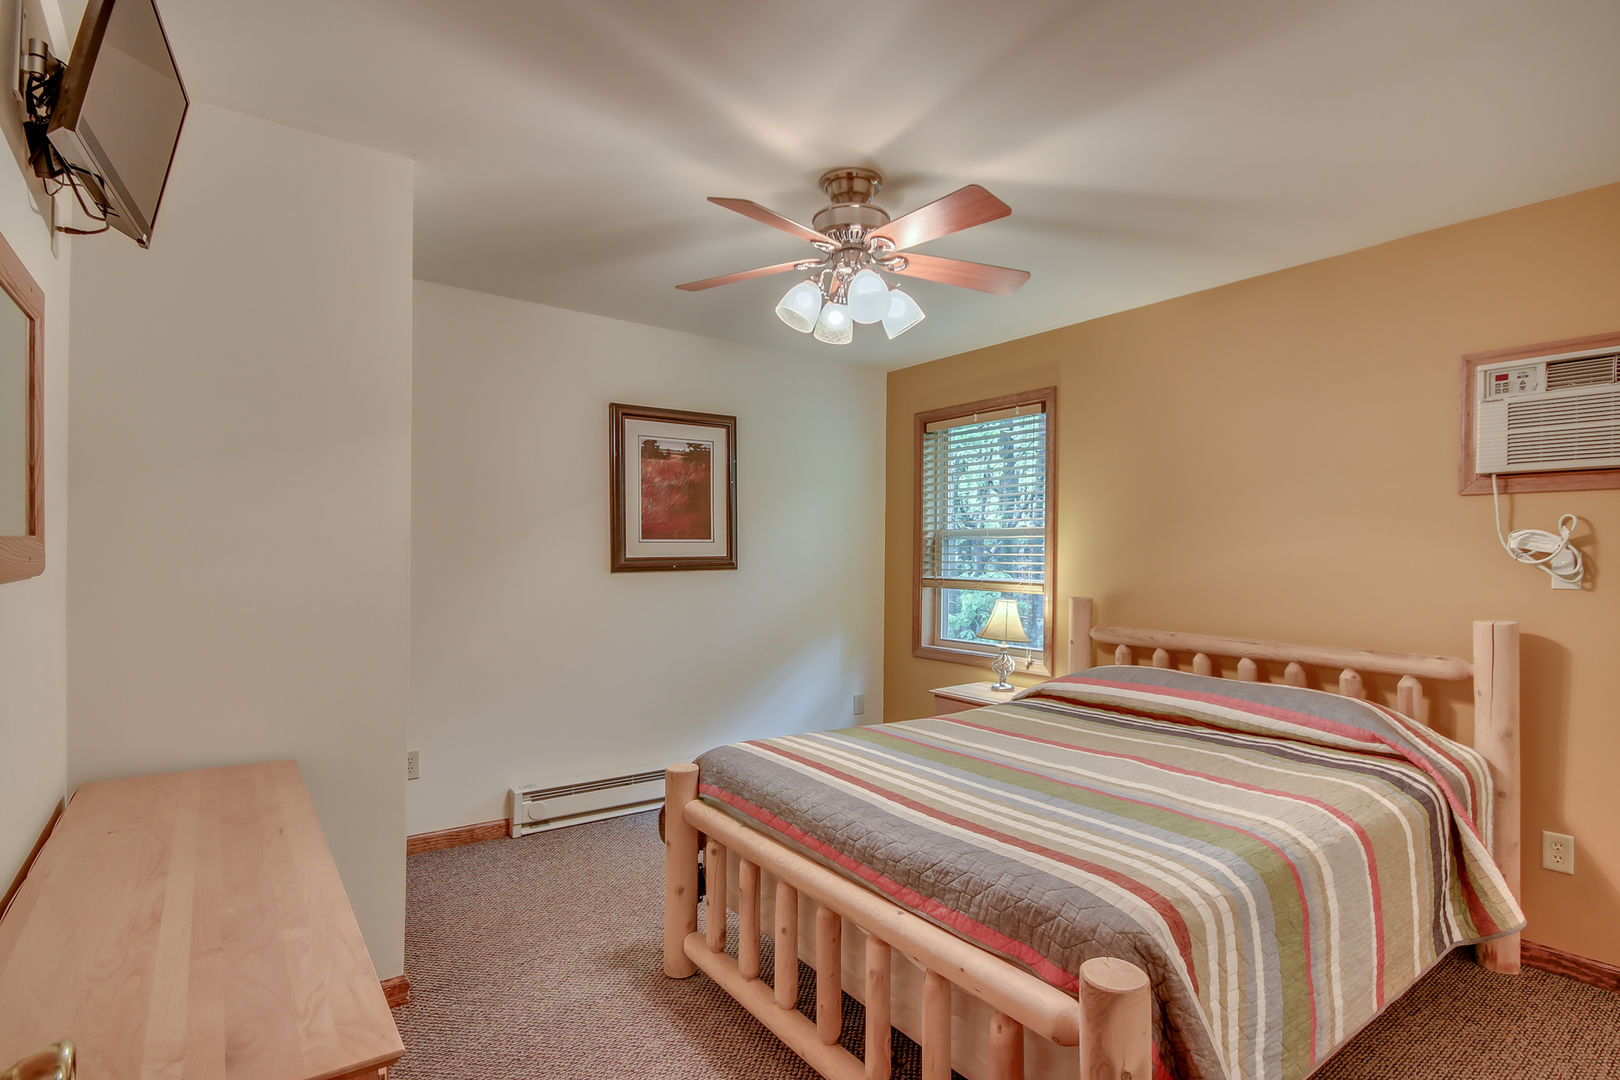 A Bedroom in Our Pocono Mountain Lakefront Rental.